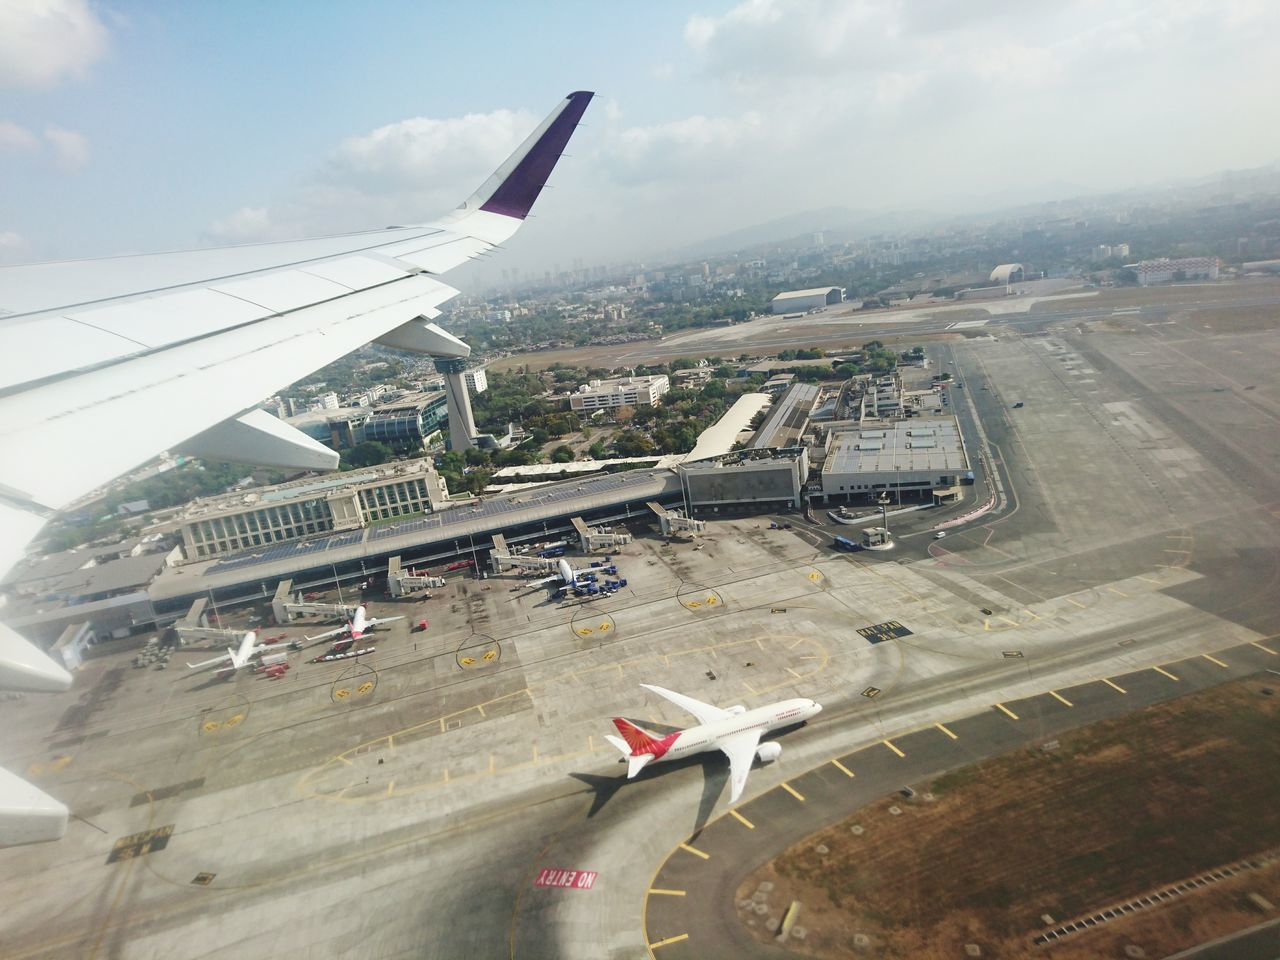 airplane, transportation, air vehicle, airport, mode of transport, aircraft wing, airport runway, flying, journey, day, aerial view, commercial airplane, cloud - sky, sky, travel, outdoors, land vehicle, no people, architecture, built structure, runway, city, airplane wing, aerospace industry